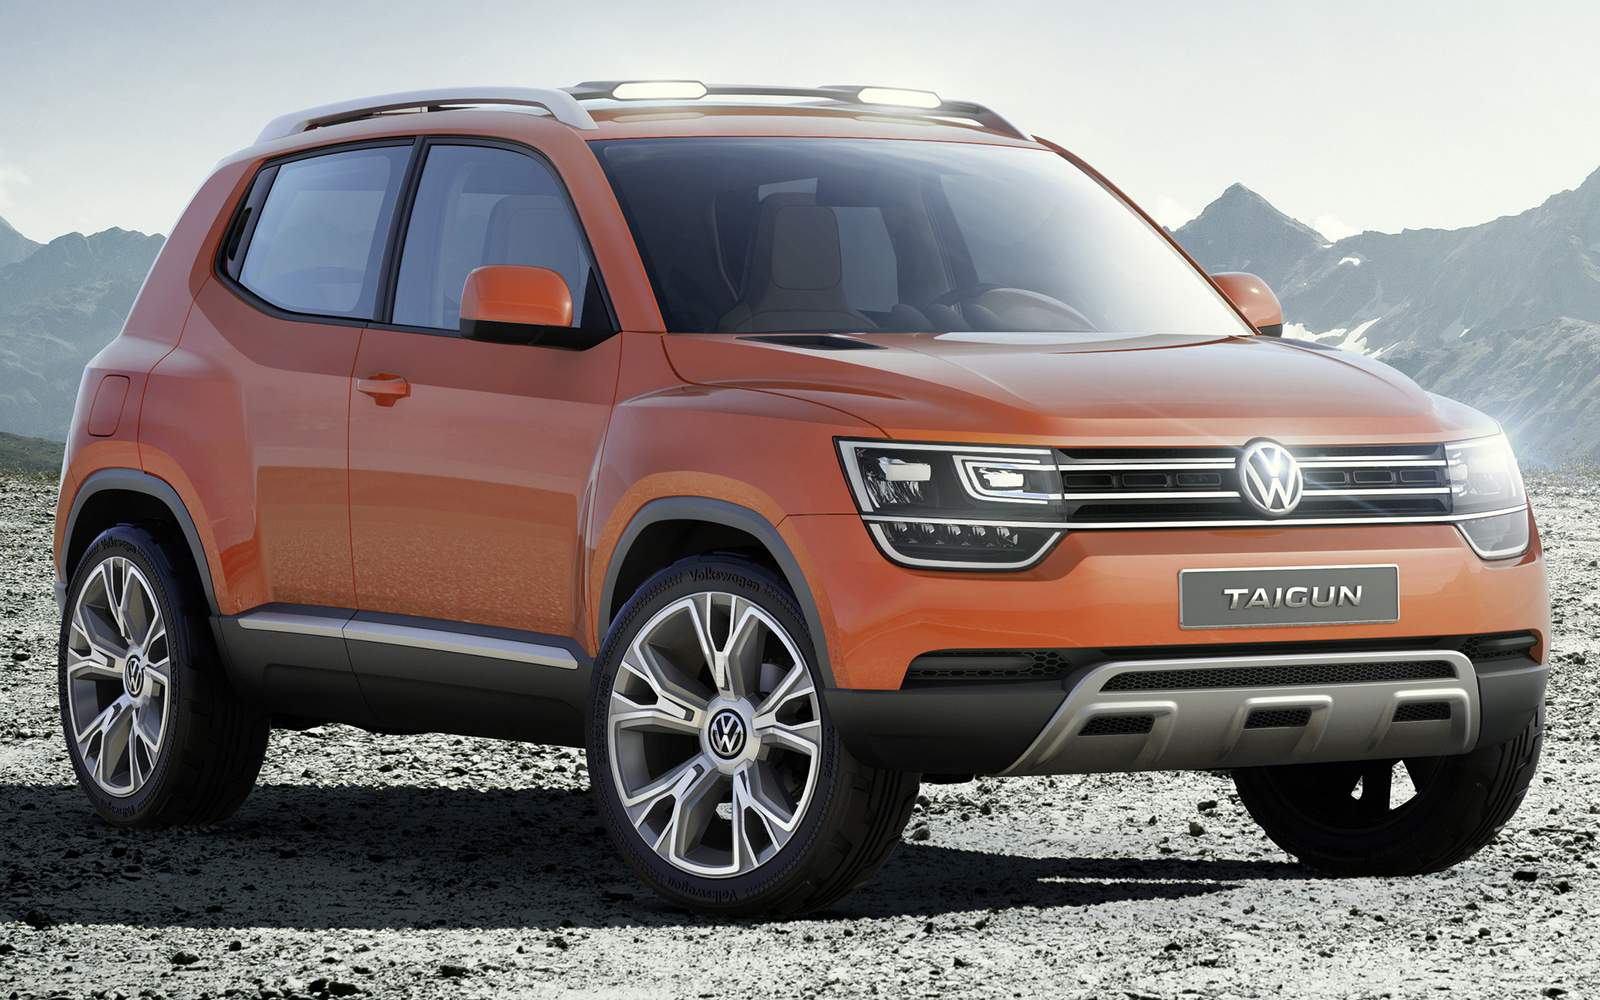 volkswagen taigun suv do up performance e consumo car blog br. Black Bedroom Furniture Sets. Home Design Ideas